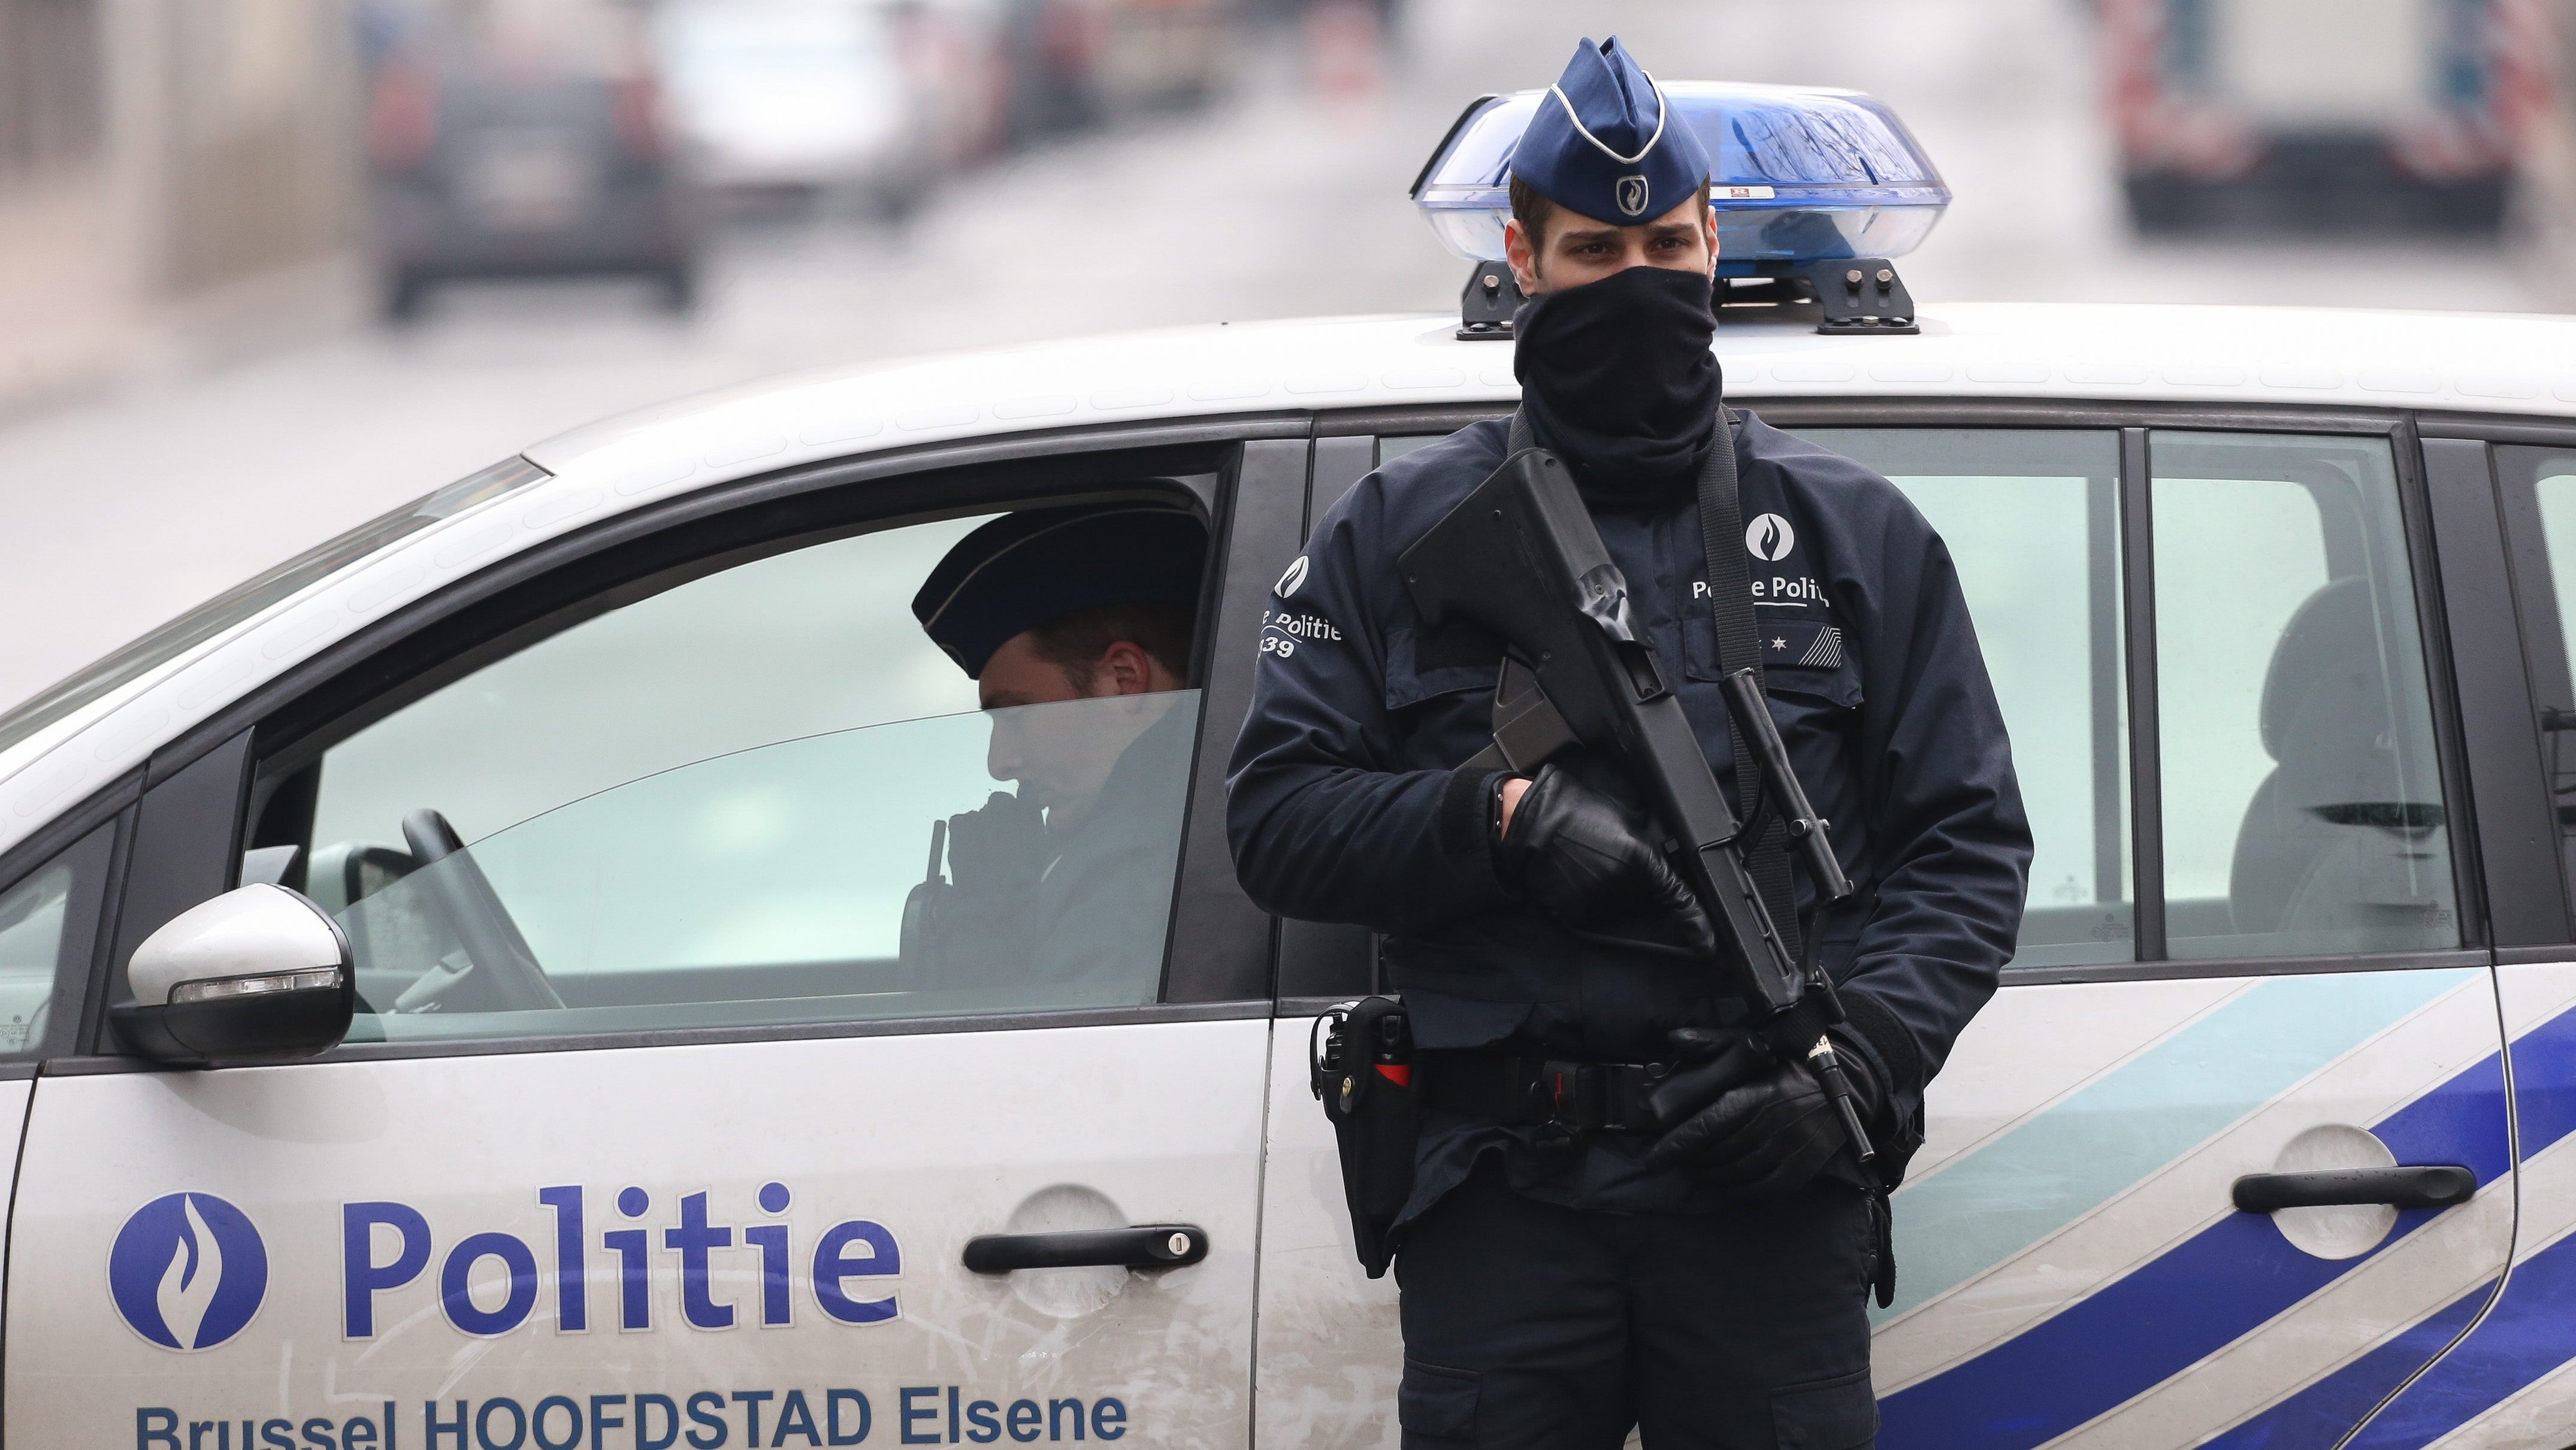 Arrestation d'un suspect pour tentative d'assassinat terroriste en Belgique